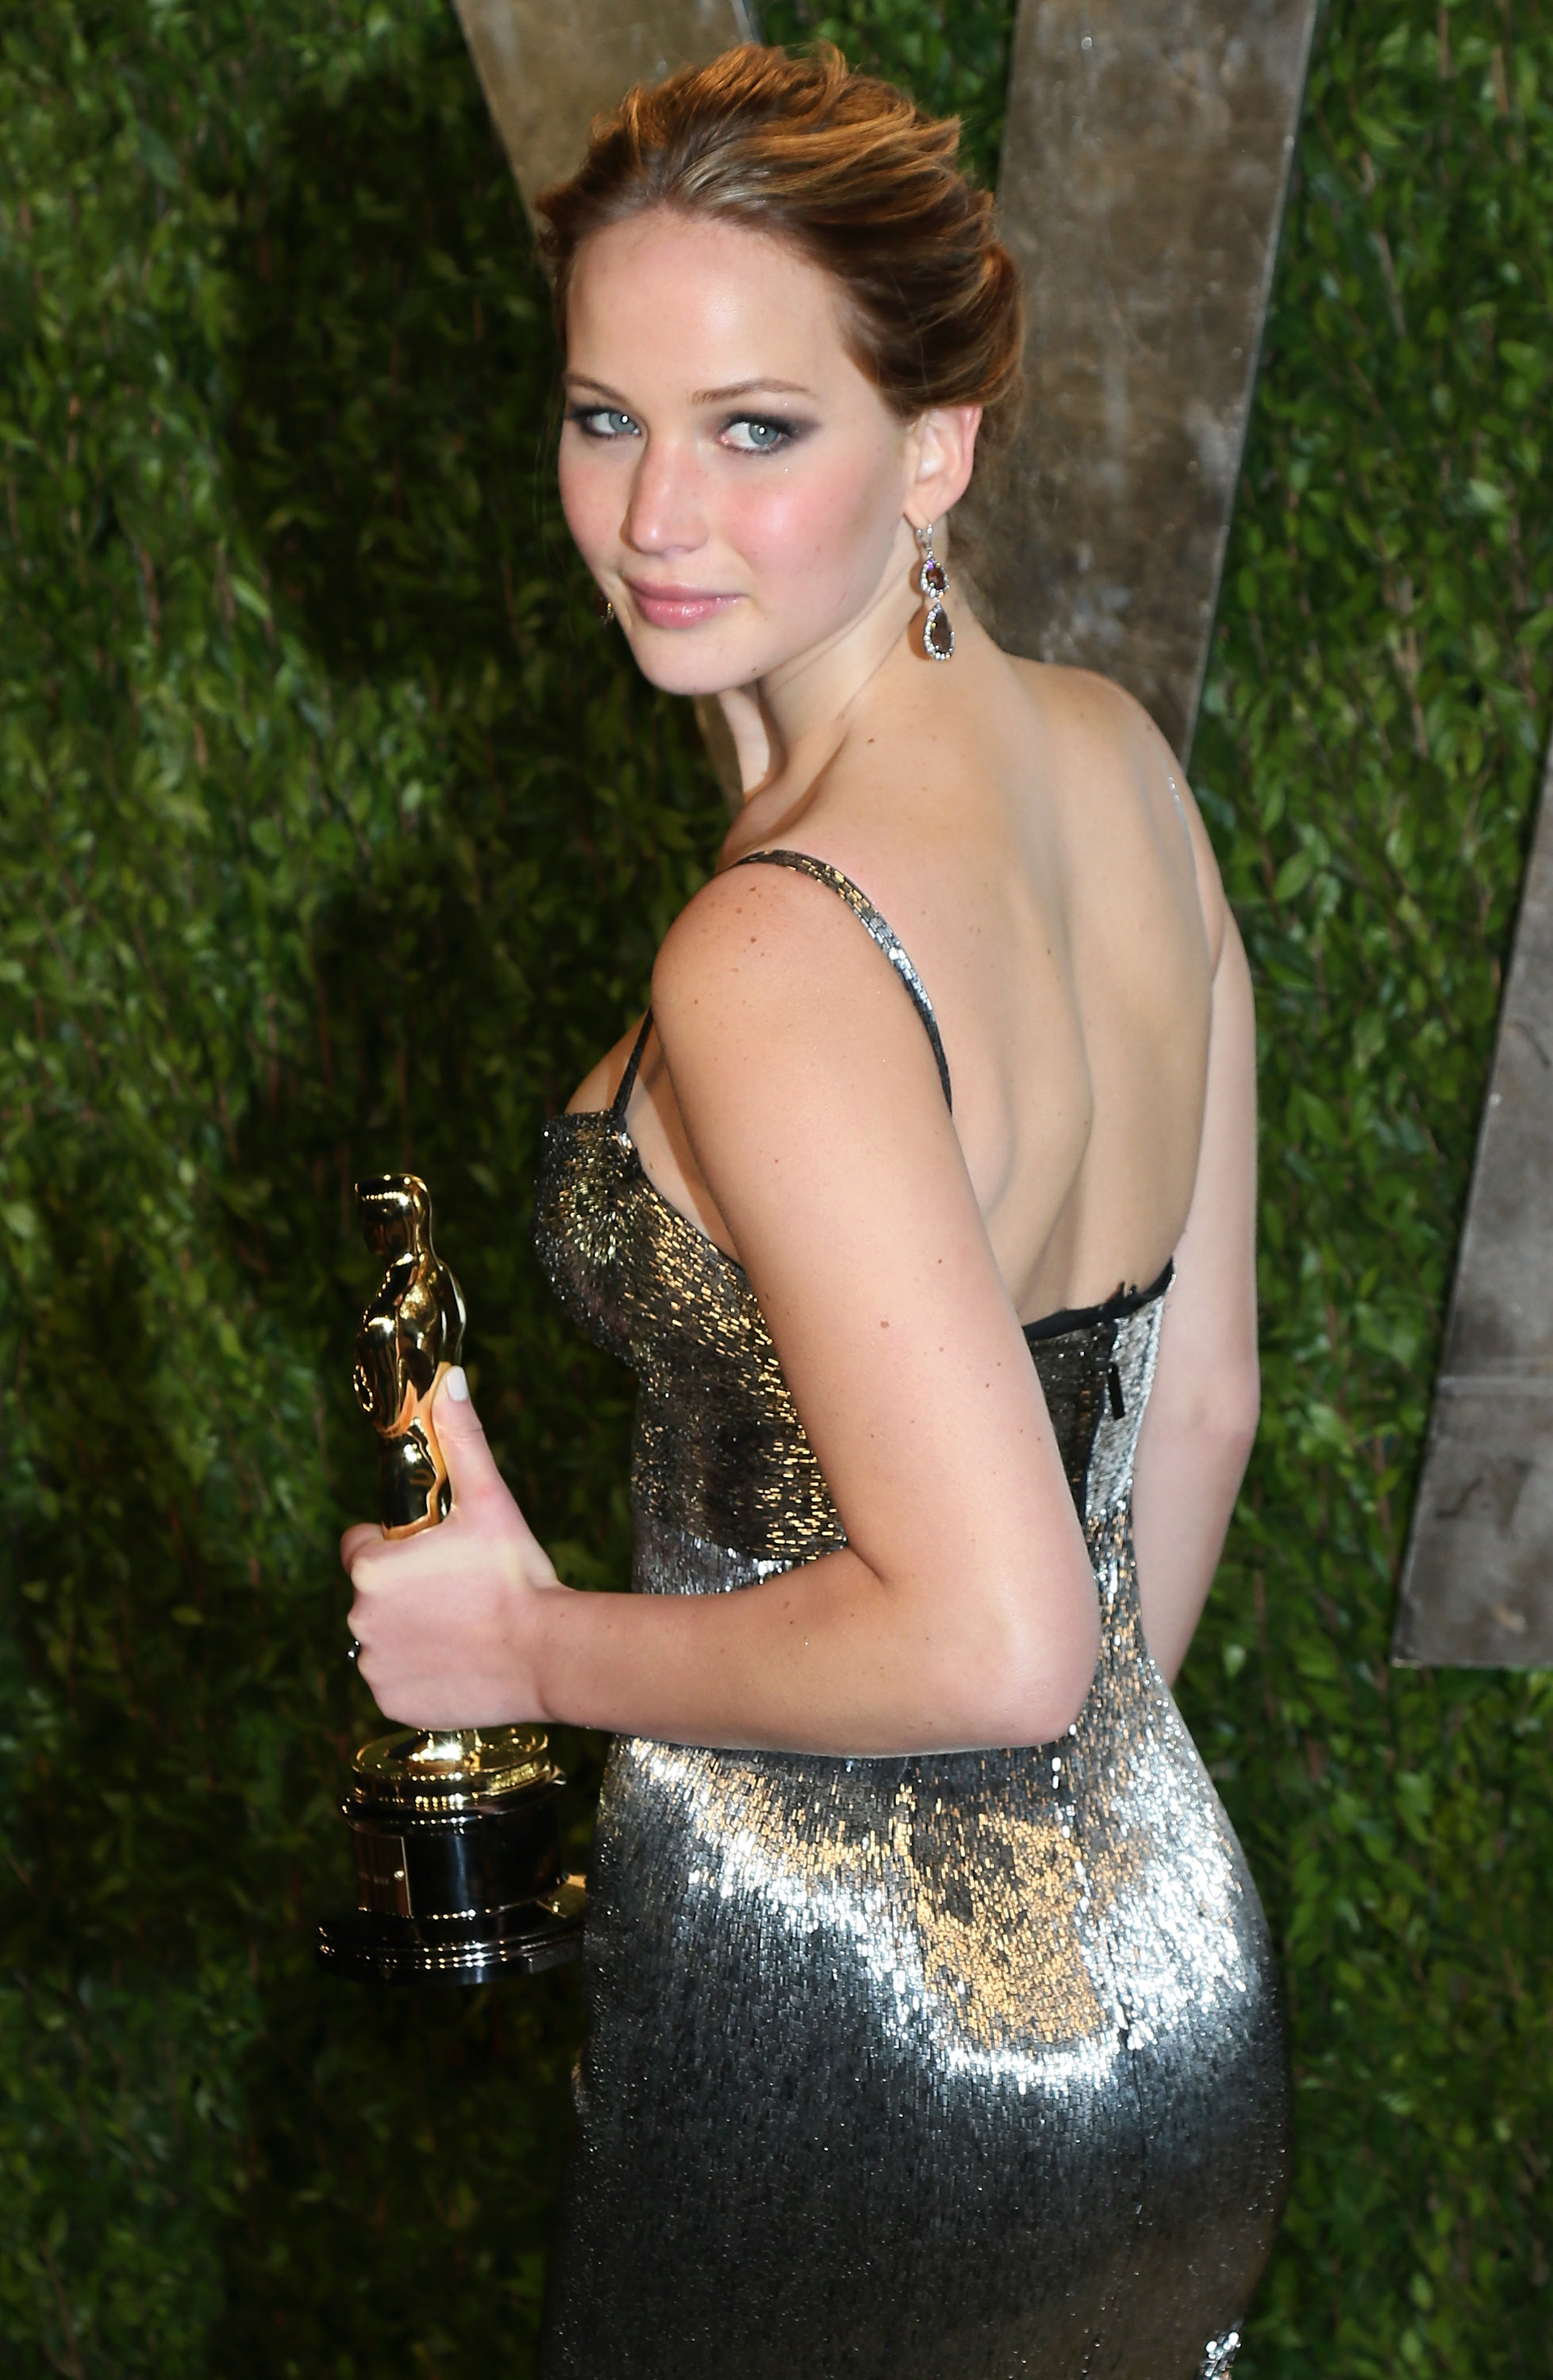 Jennifer Lawrence attends the 2013 Vanity Fair Oscar Party on Feb. 24, 2013 in Los Angeles.